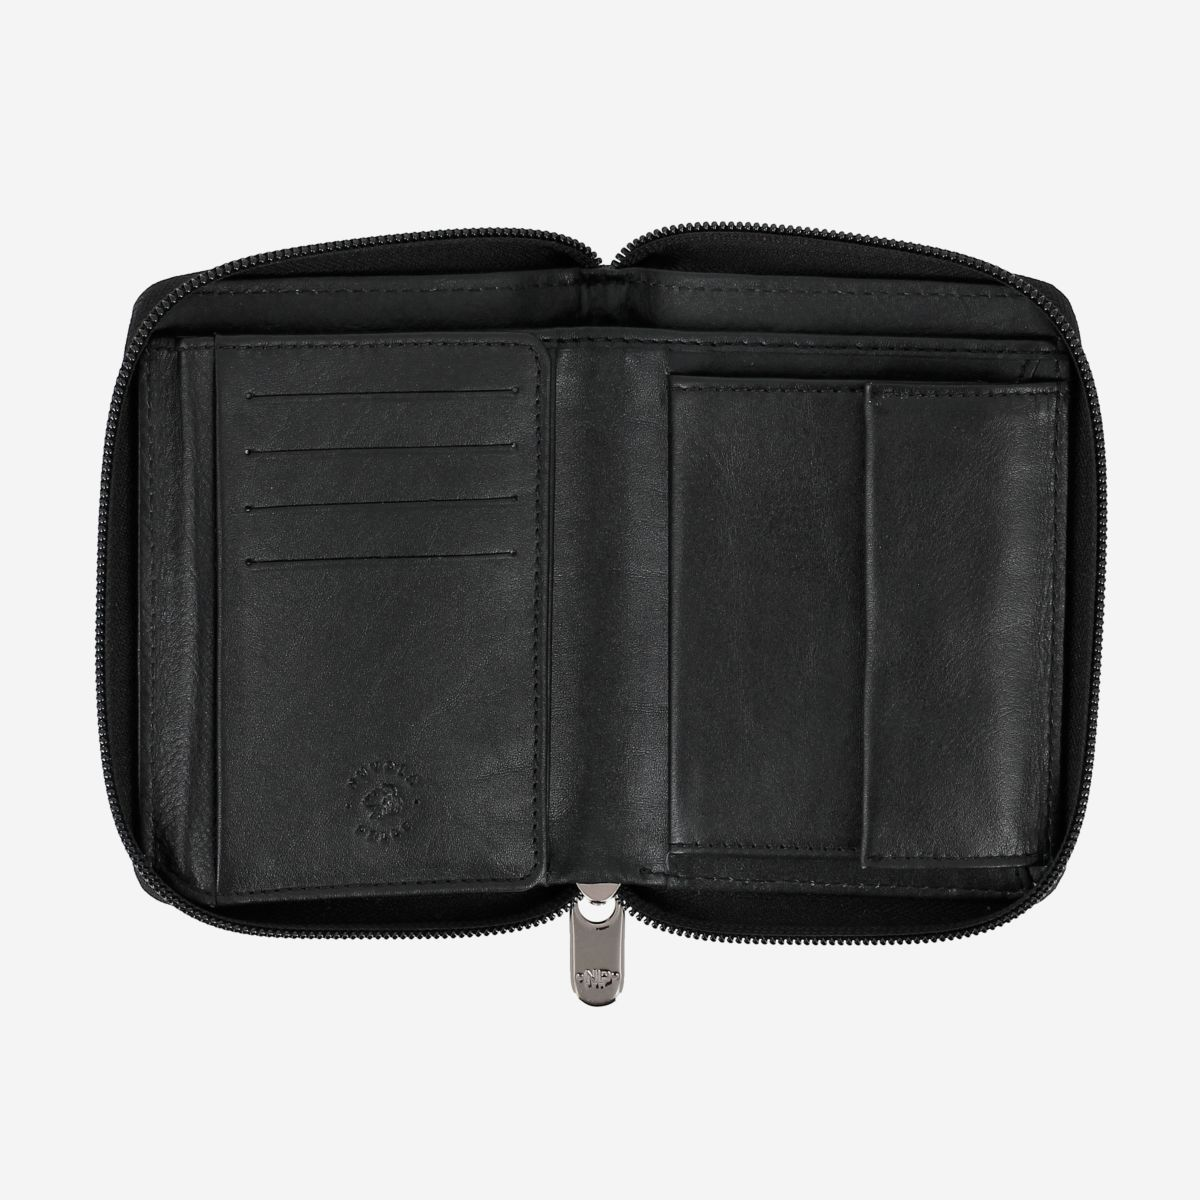 NUVOLA PELLE Mens Leather Wallet with Zip - Black